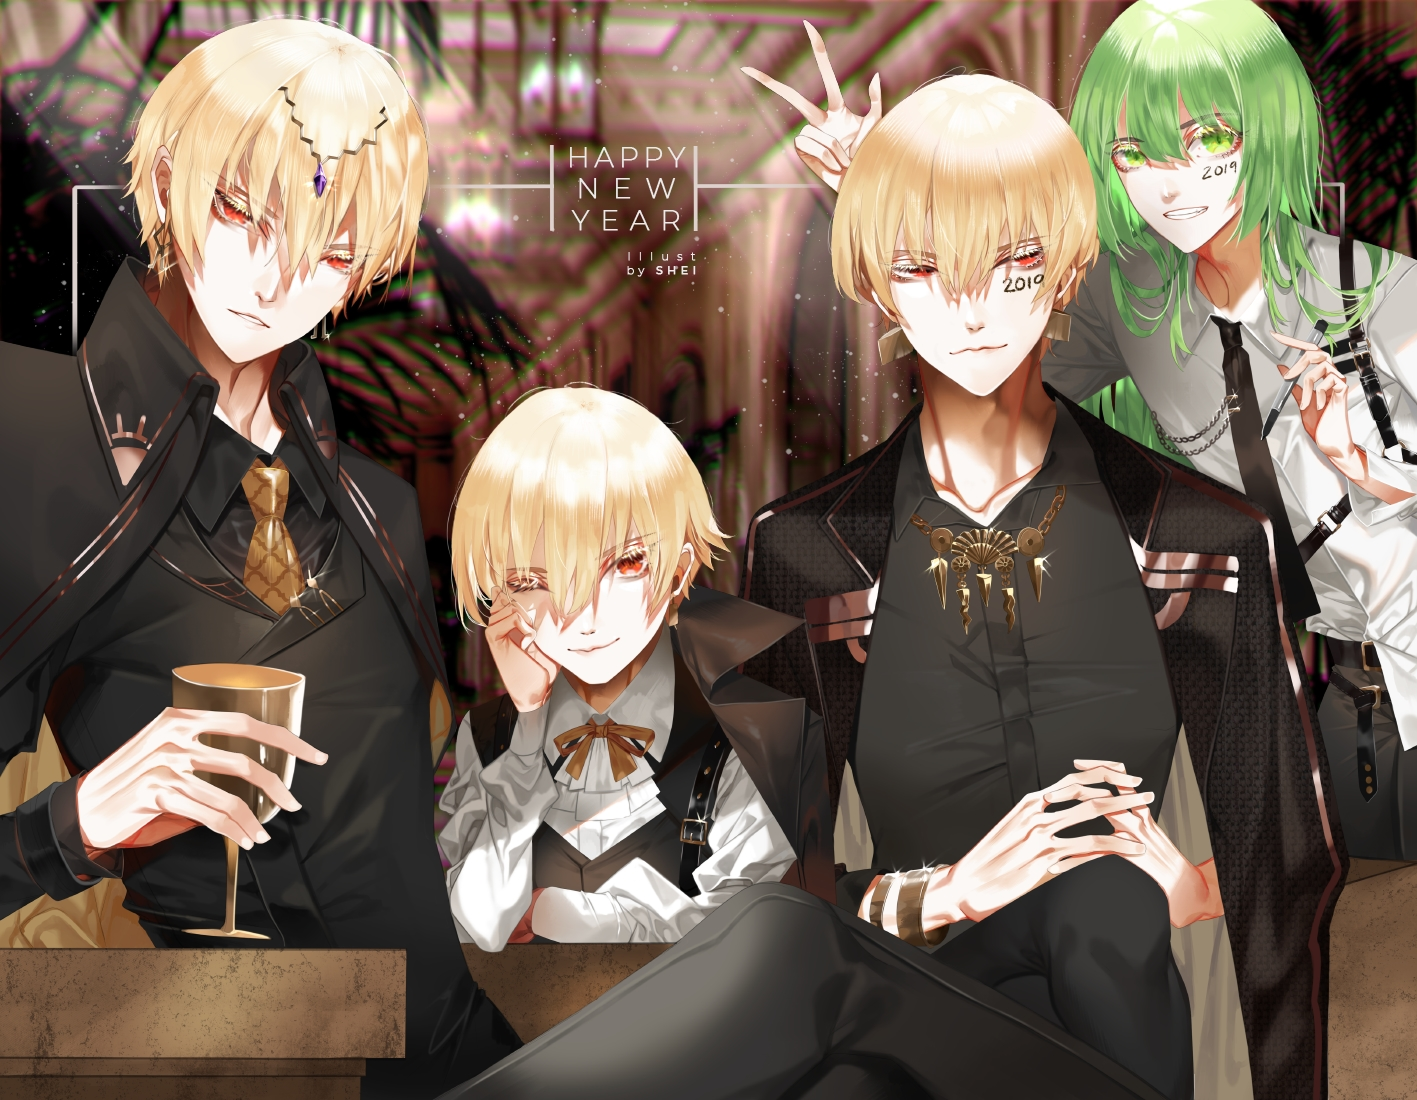 all_male blonde_hair drink enkidu fate/grand_order fate_(series) gilgamesh green_eyes green_hair group long_hair male red_eyes ribbons shei99 short_hair suit tie wink wristwear